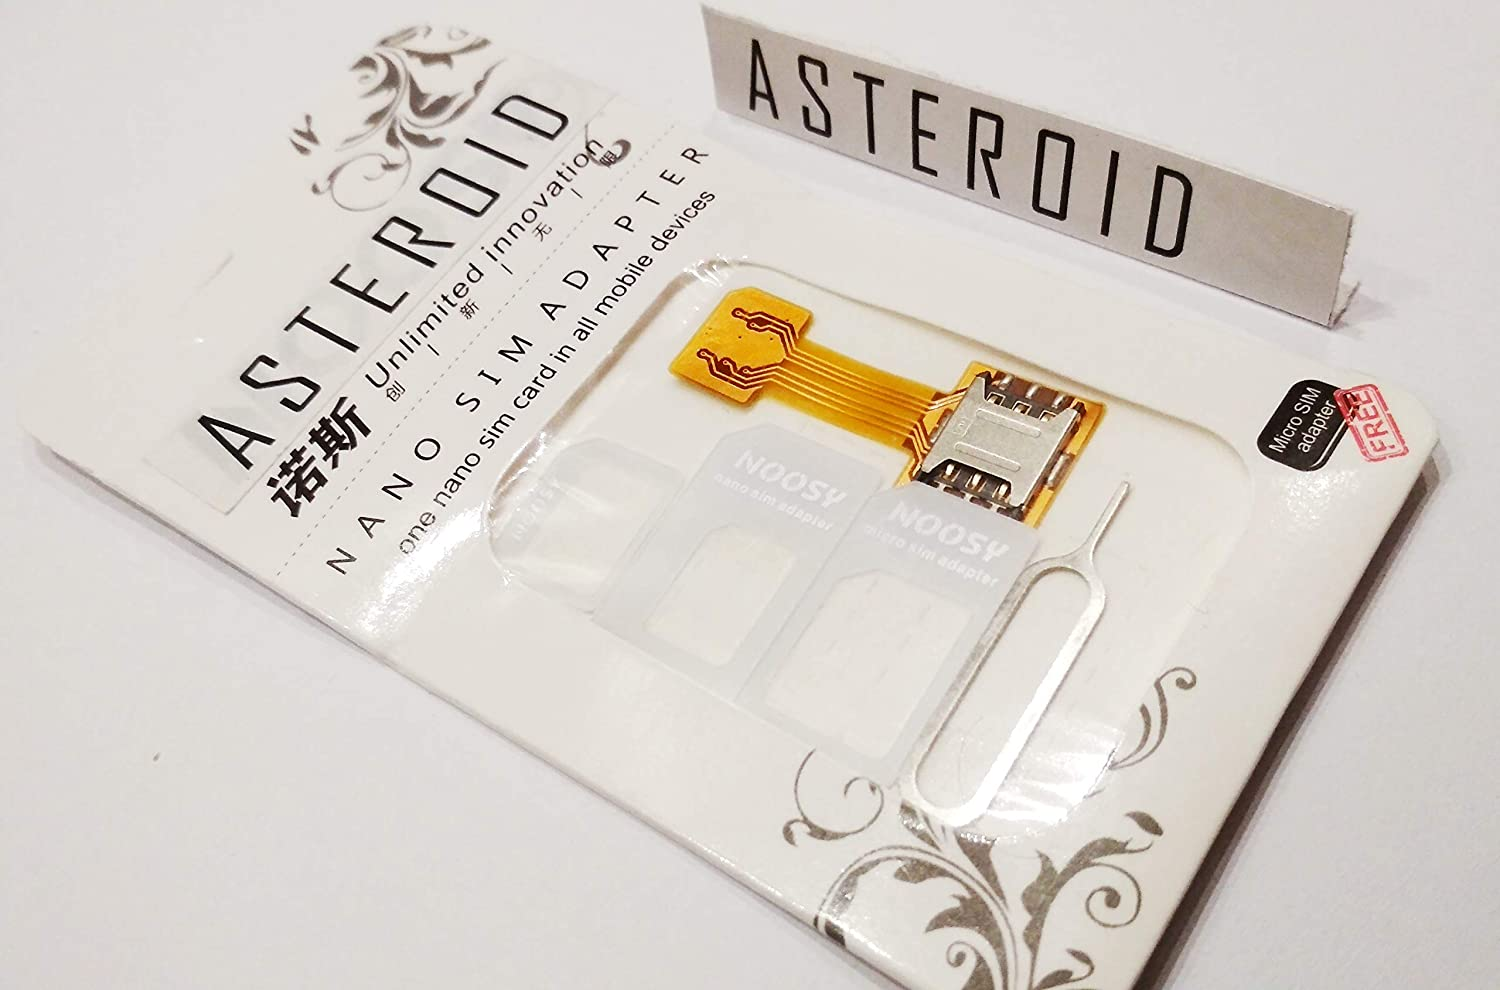 Asteroid Hybrid Sim Slot Adapter Avails You To Run 2 Parallel Circuit In Multisim Youtube Electronics